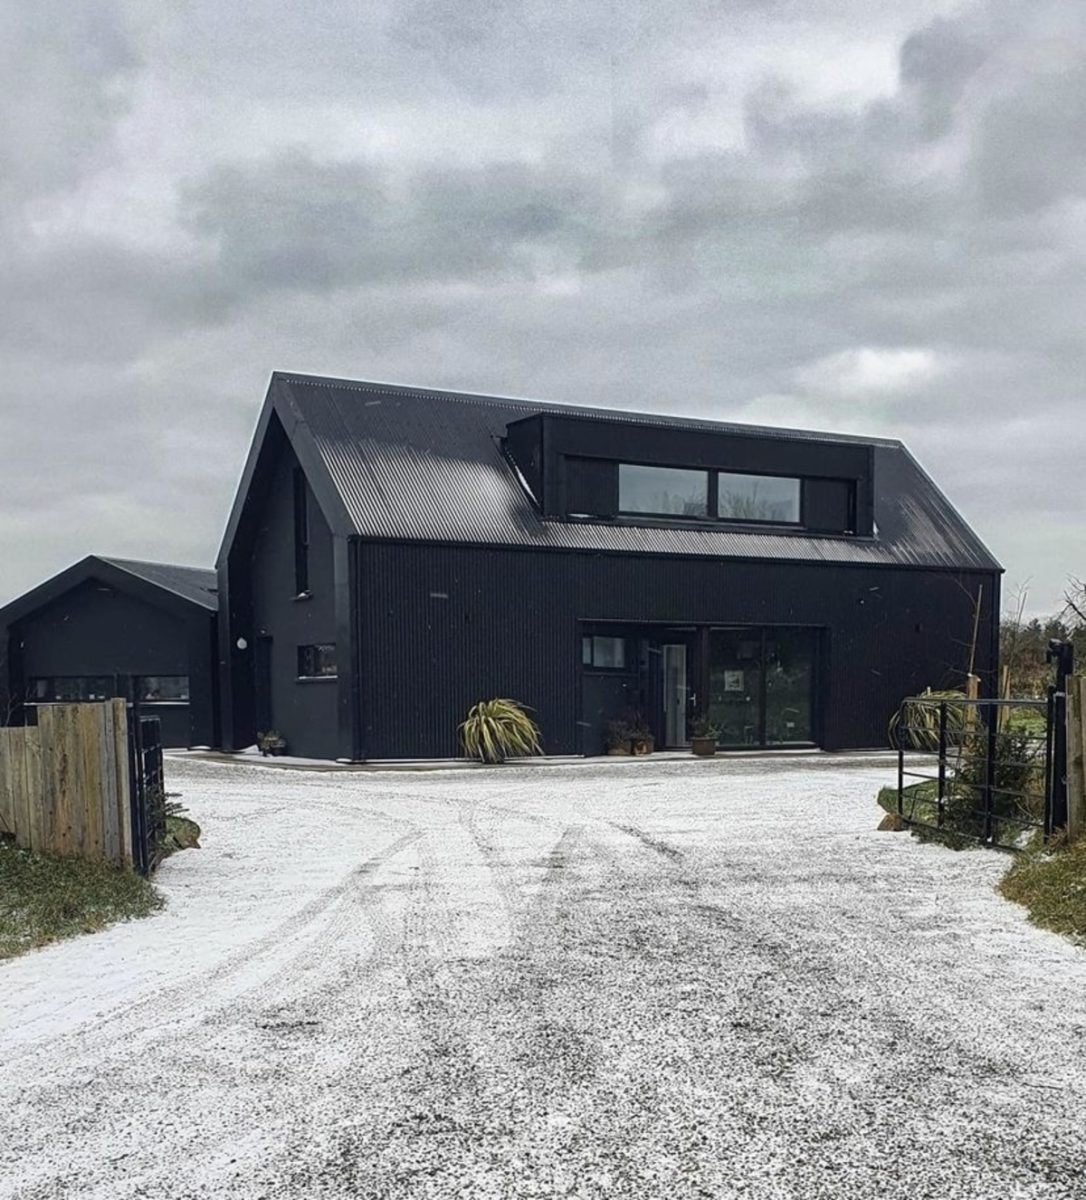 The self-build 'black house' with a piano kitchen island